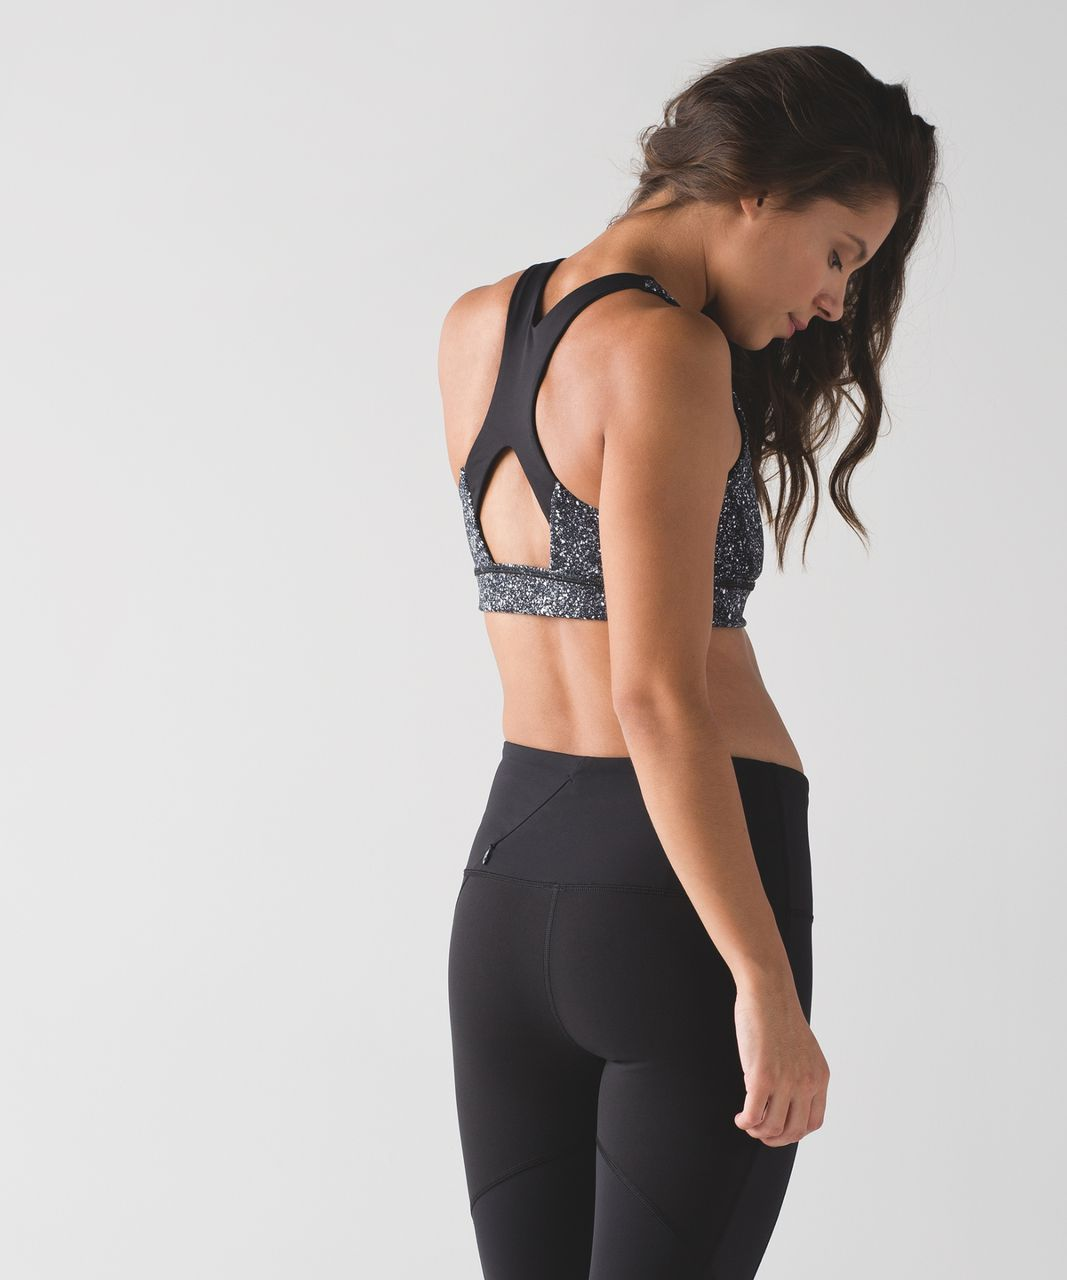 f8517798ee1 Lululemon Run Stuff Your Bra (Long Line) - Mini Splatter White Black   Black  - lulu fanatics